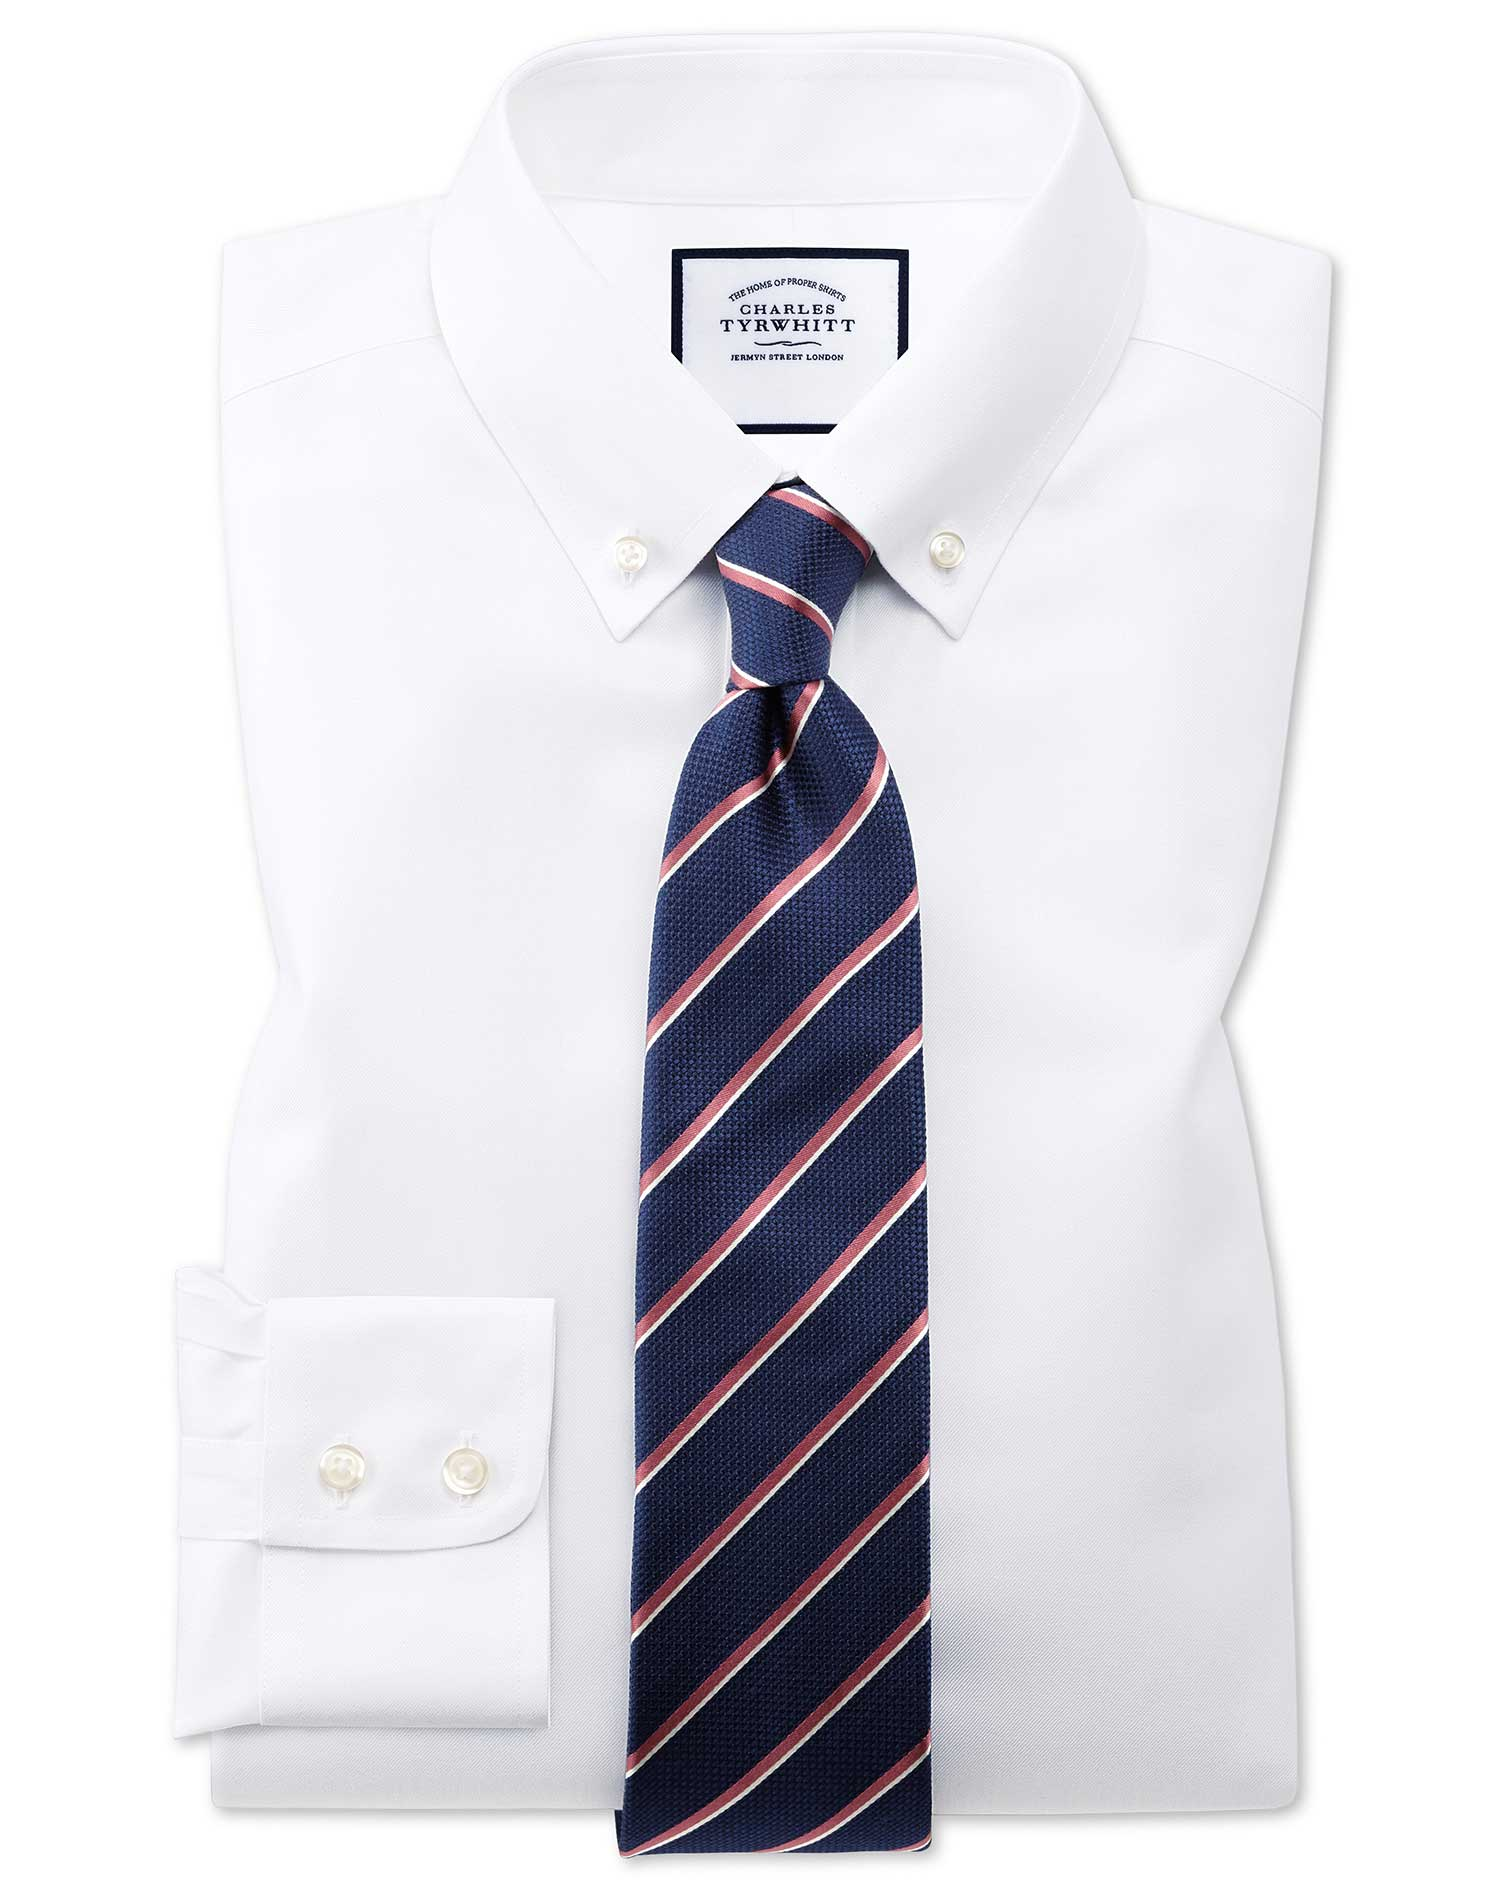 Extra Slim Fit Button-Down Non-Iron Twill White Cotton Formal Shirt Single Cuff Size 15.5/37 by Char